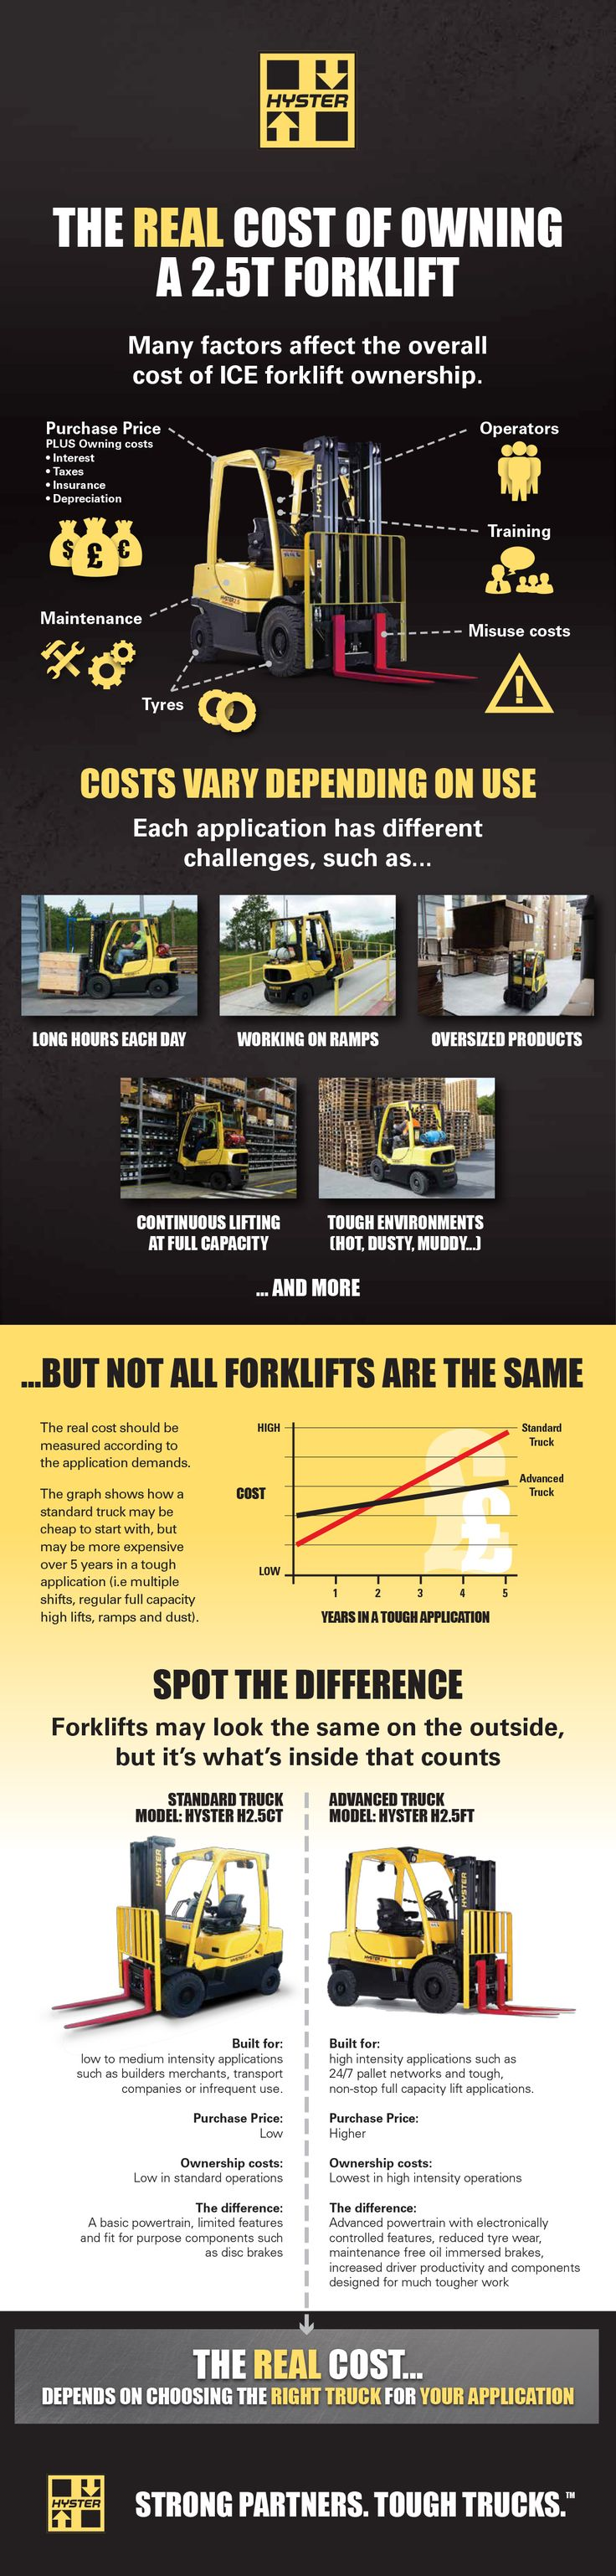 Select location type business with dock or forklift business without -  Forklift Infographic On The Costs Involved In Forklift Use